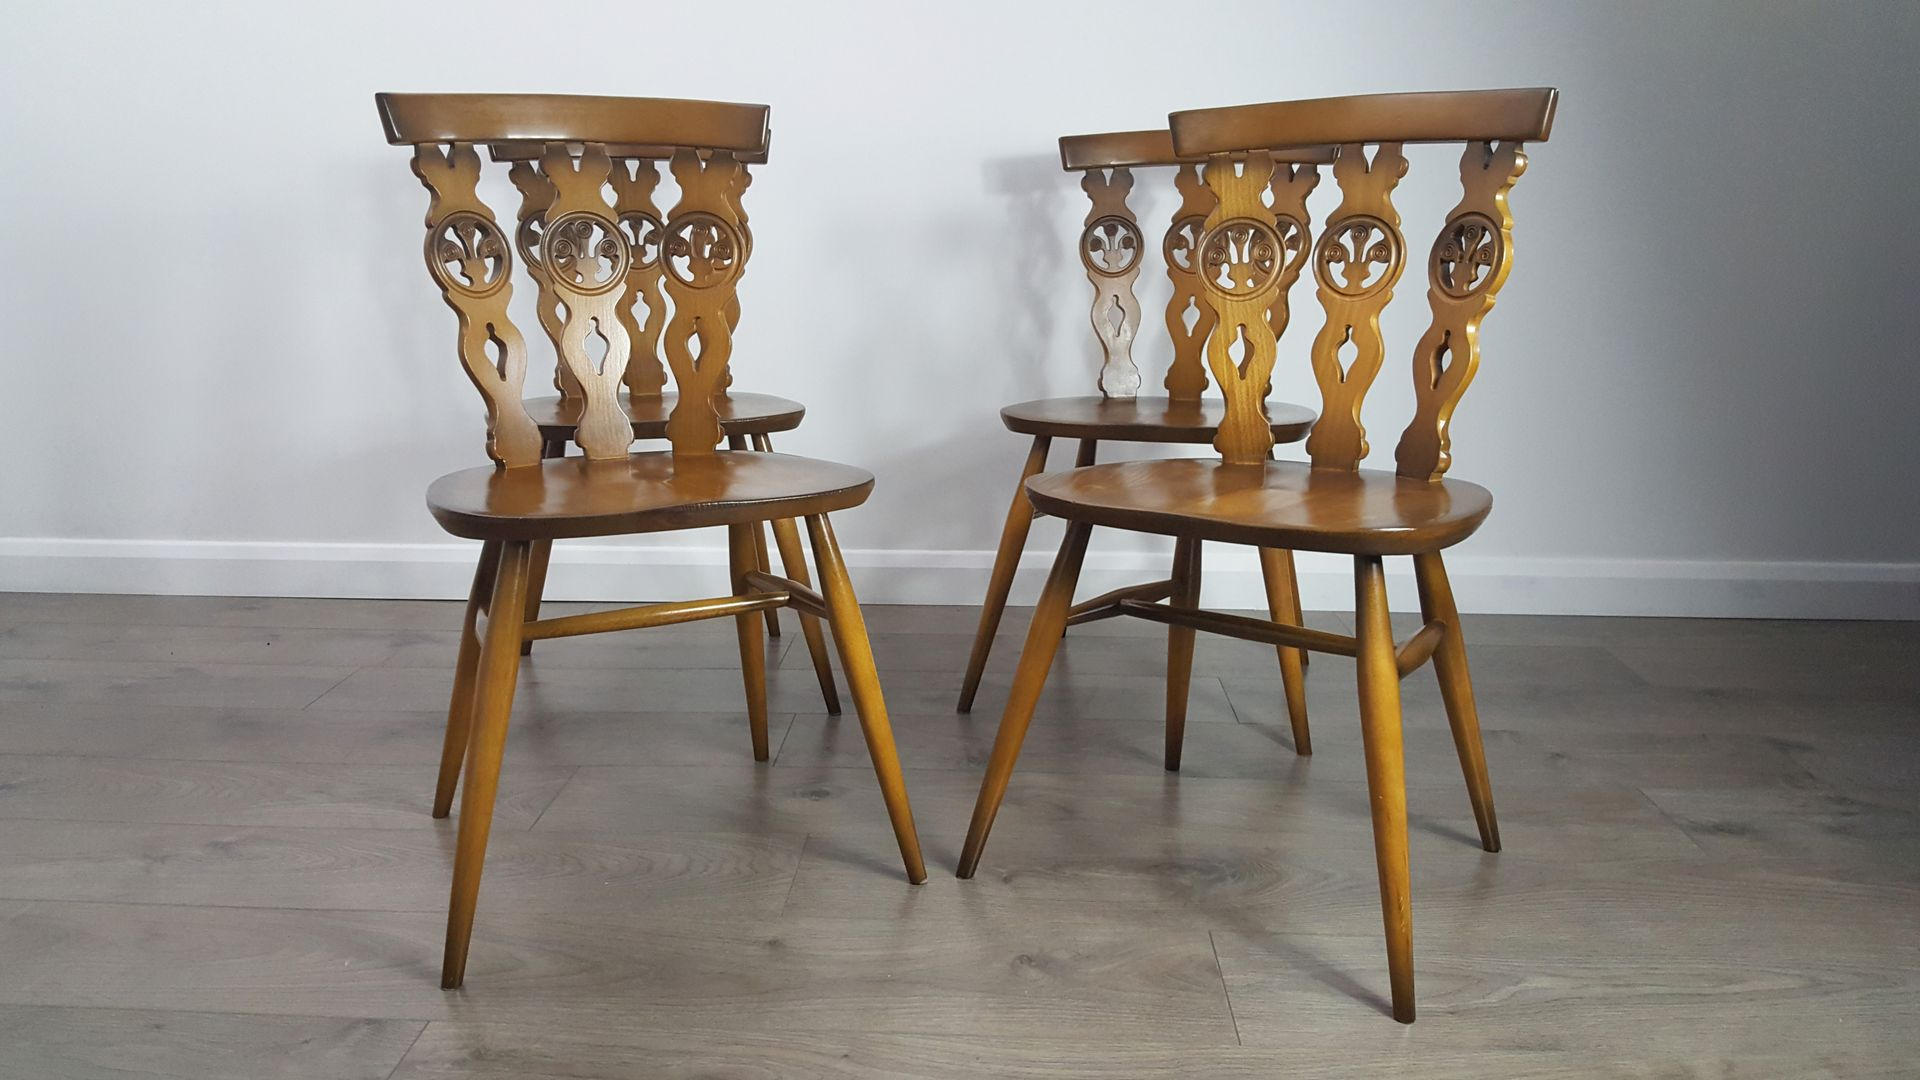 Vintage Bow Top Windsor Chairs by Lucian Ercolani for Ercol Set